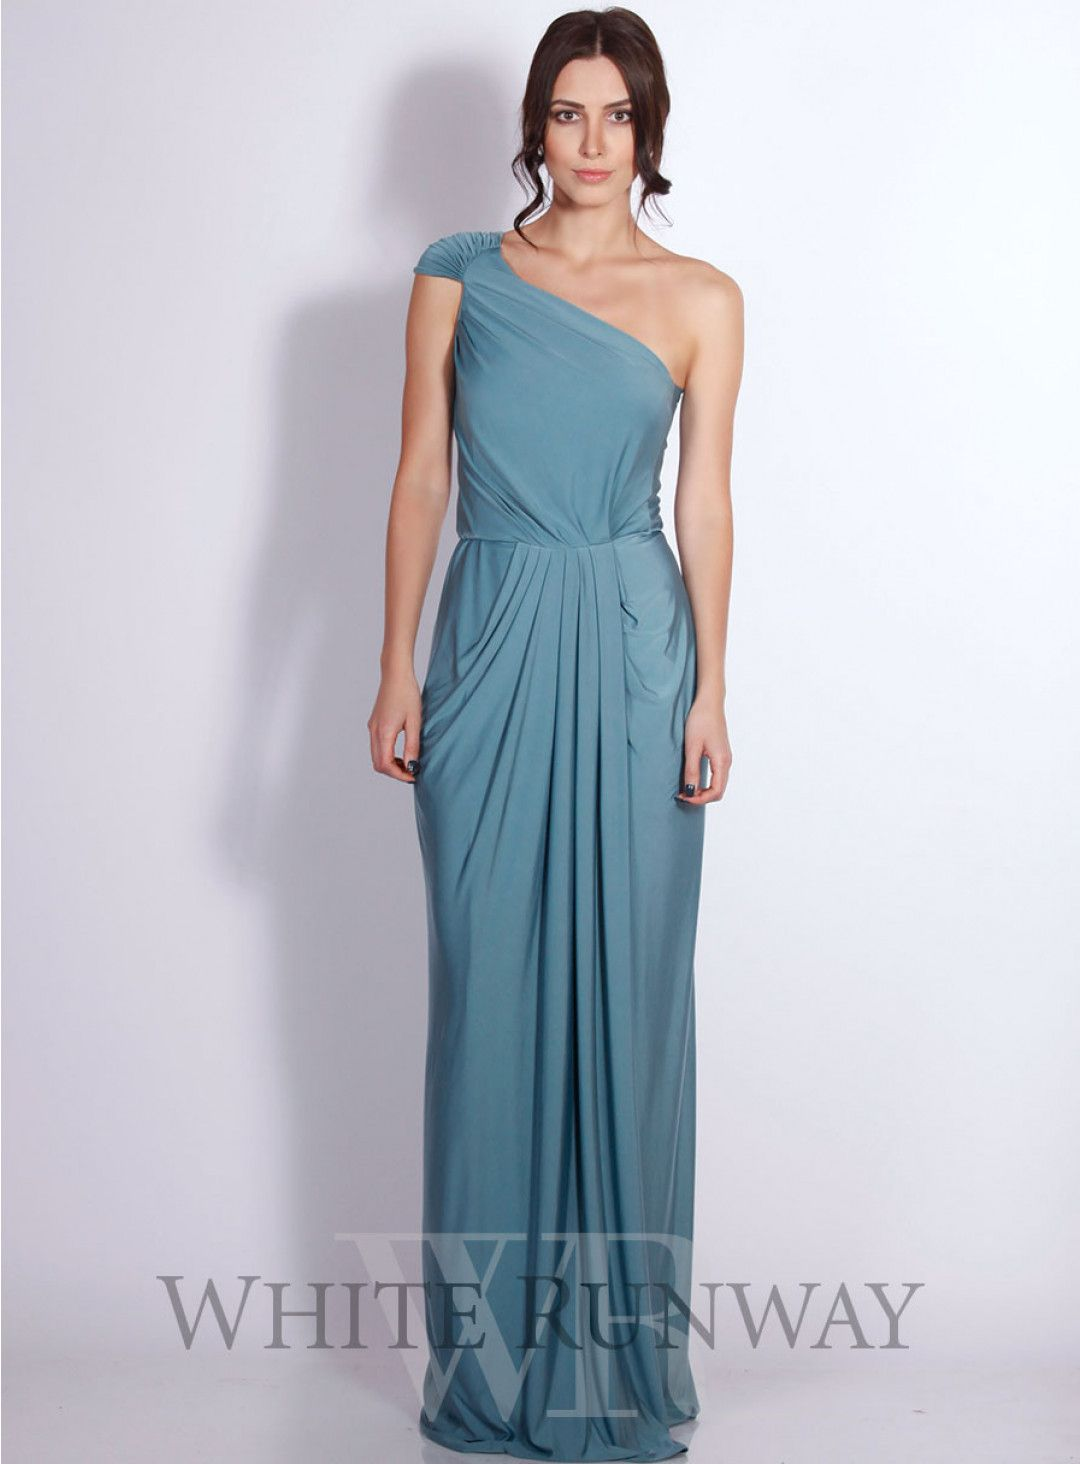 Exclusive Wilma Dress | Full length dresses, Weddings and Wedding